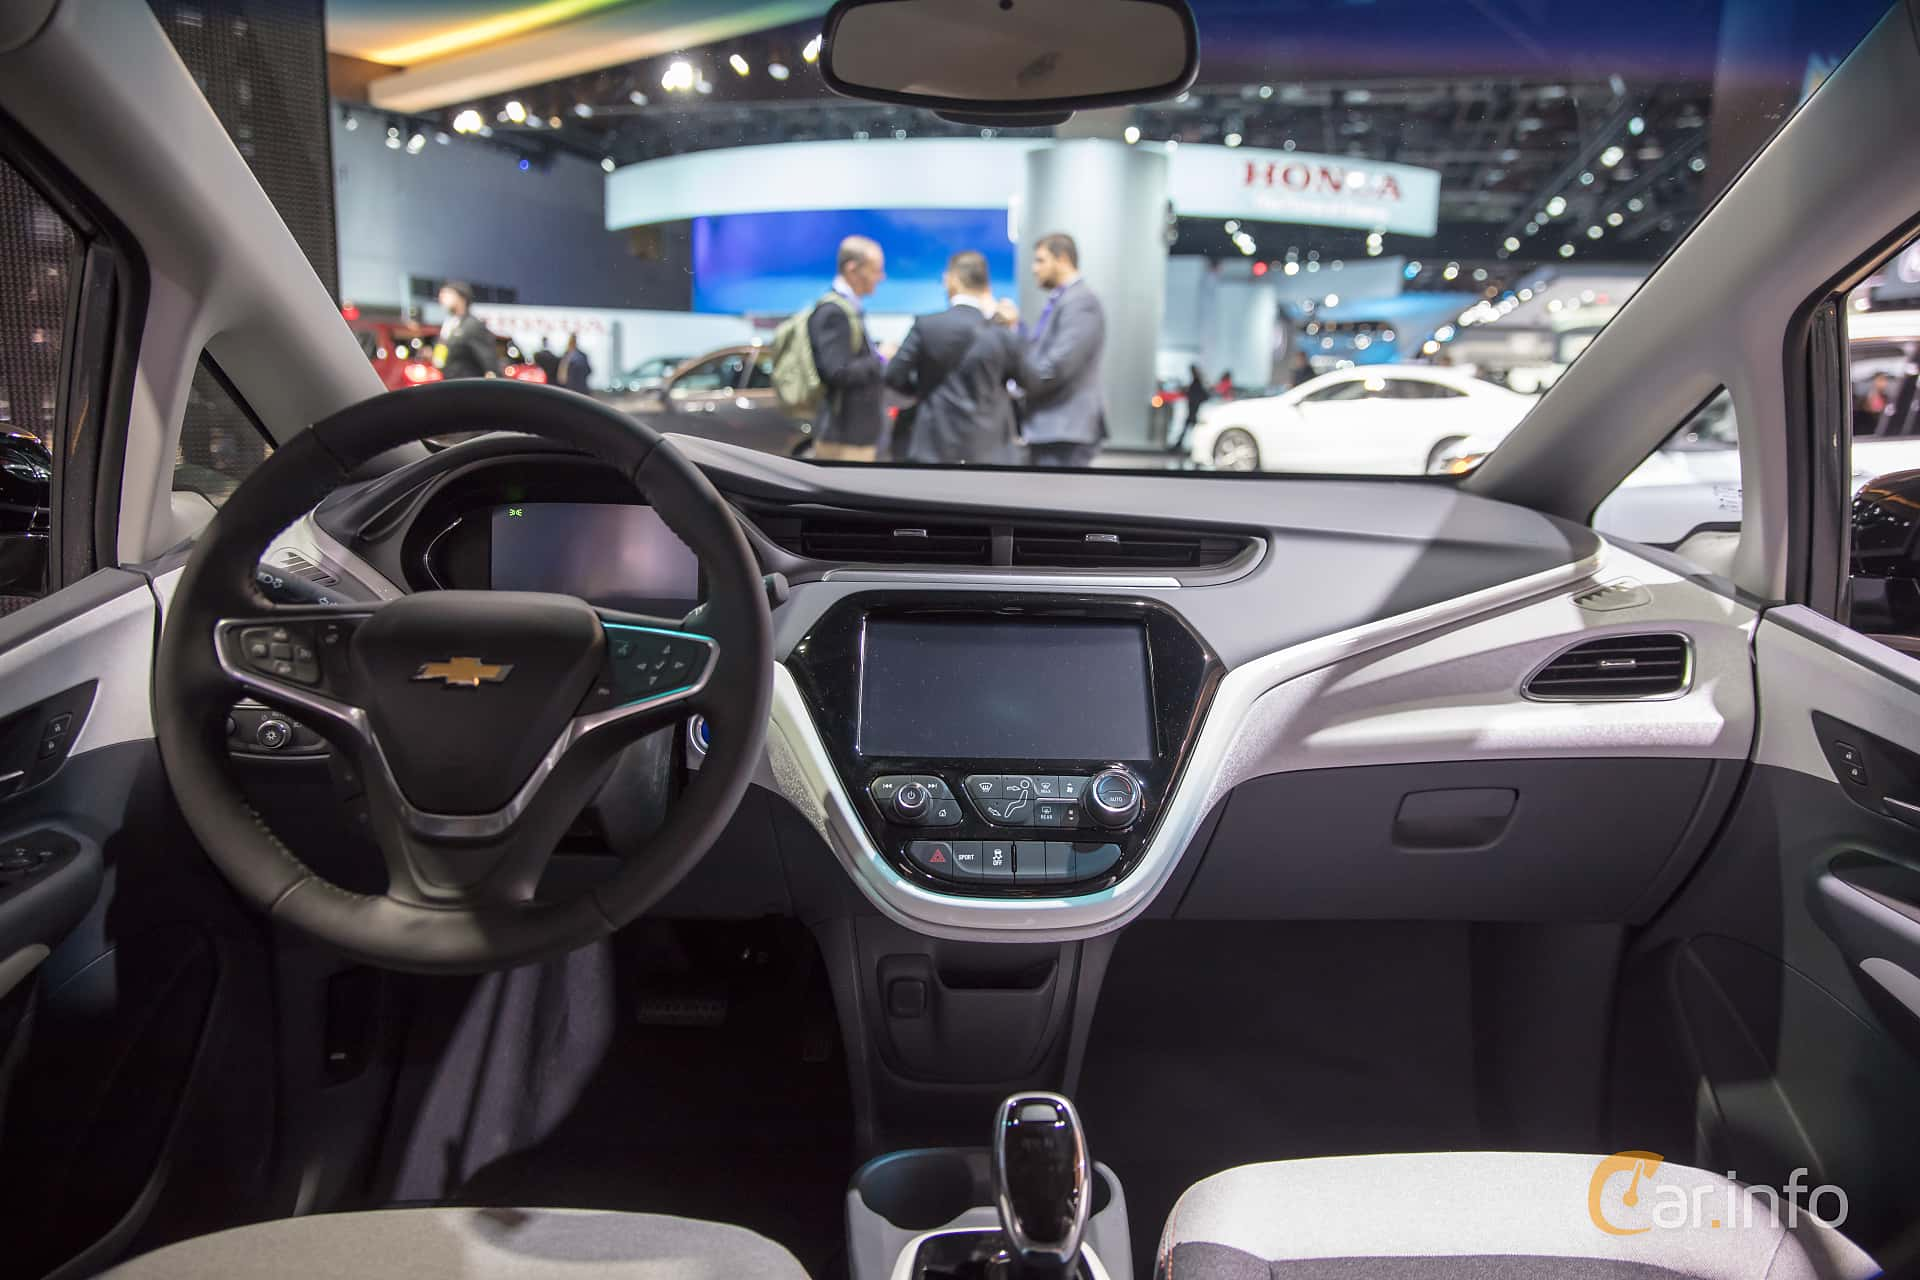 Chevrolet Bolt EV 60 kWh Single Speed, 203hp, 2017 at North American International Auto Show 2018